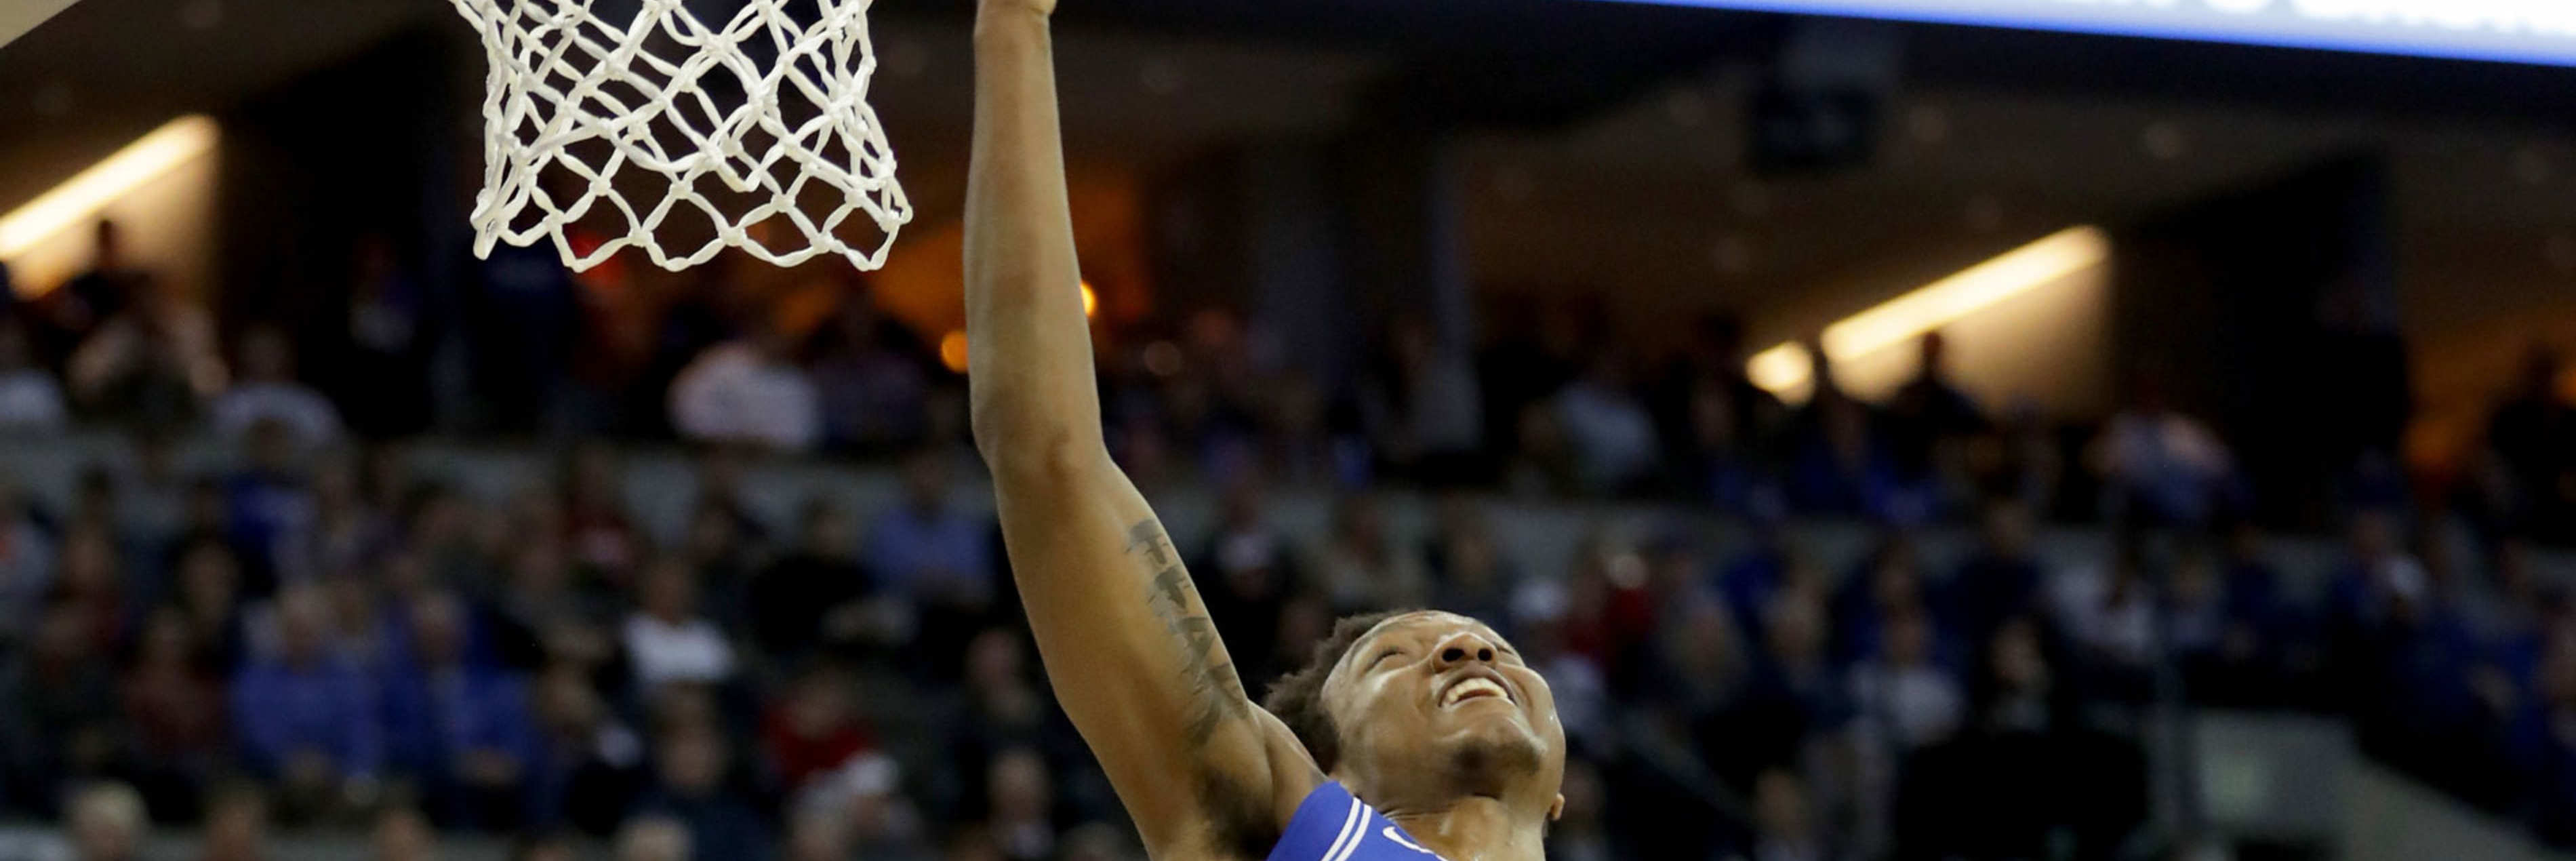 Wendell Carter Jr #34 of the Duke Blue Devils shoots the ball against the Kansas Jayhawks during the first half in the 2018 NCAA Men's Basketball Tournament Midwest Regional at CenturyLink Center on March 25, 2018 in Omaha, Nebraska.